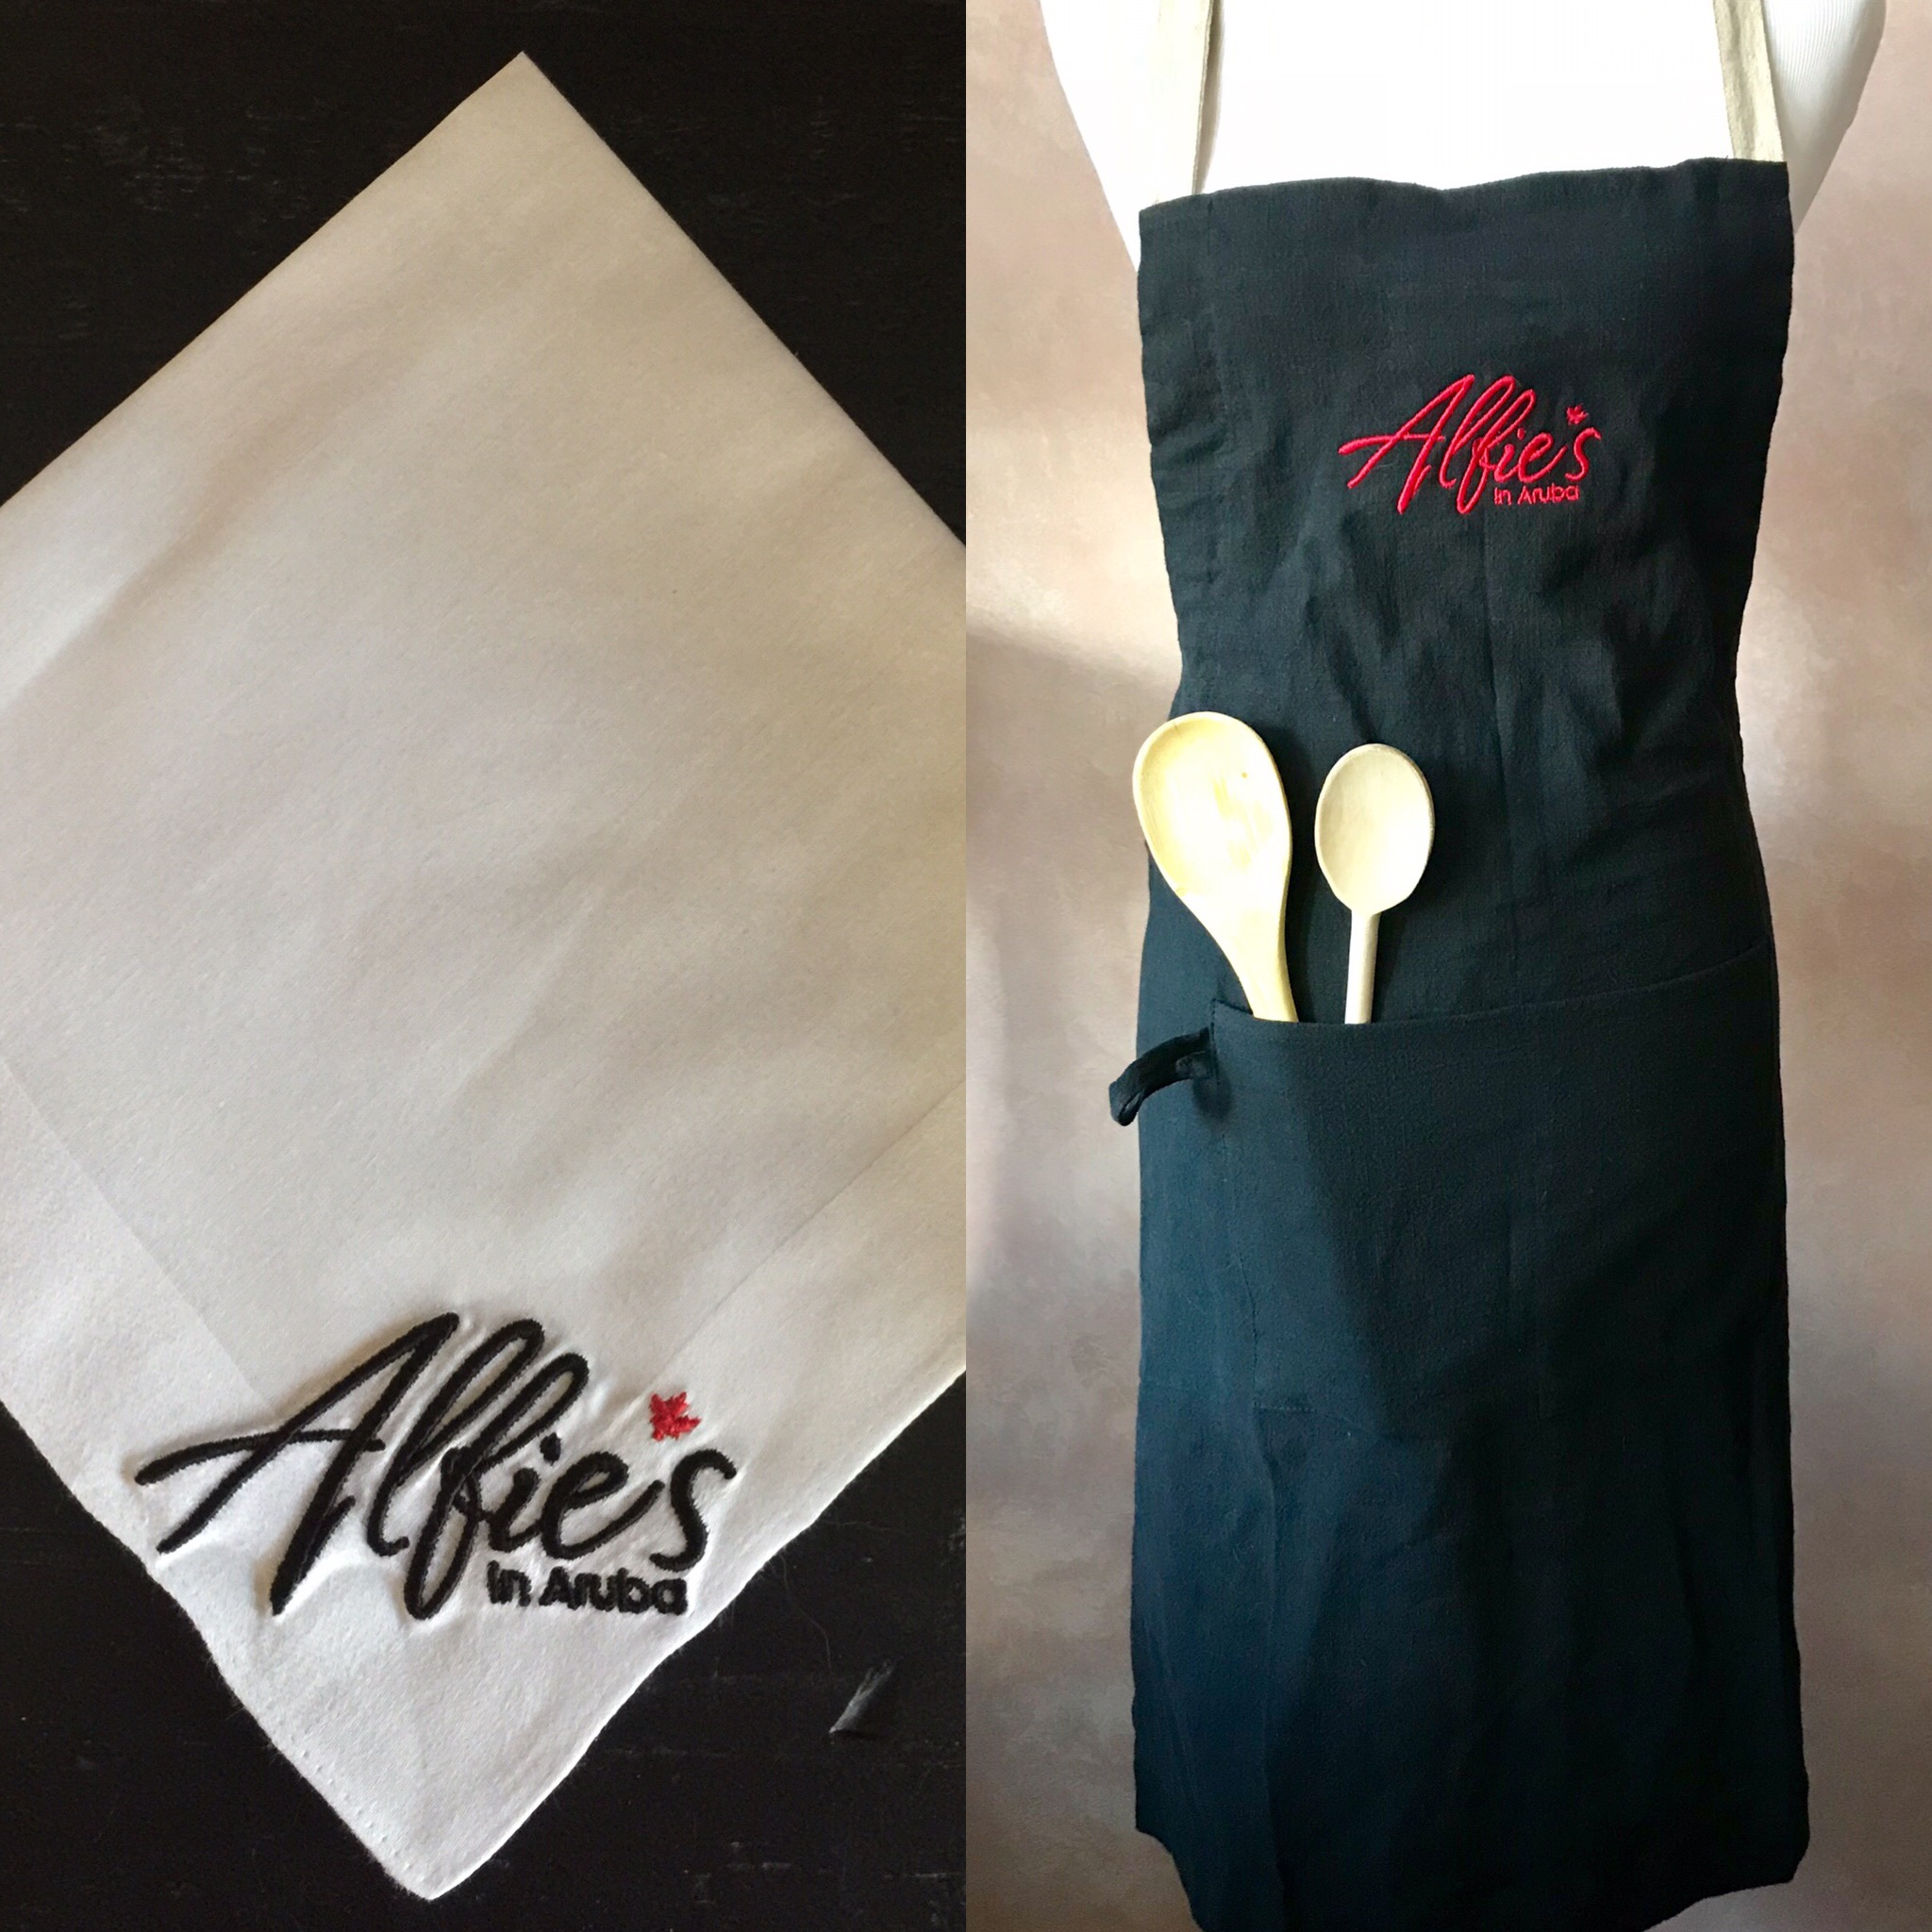 Alfie's in Aruba Custom Embroidered Handkerchief and Apron